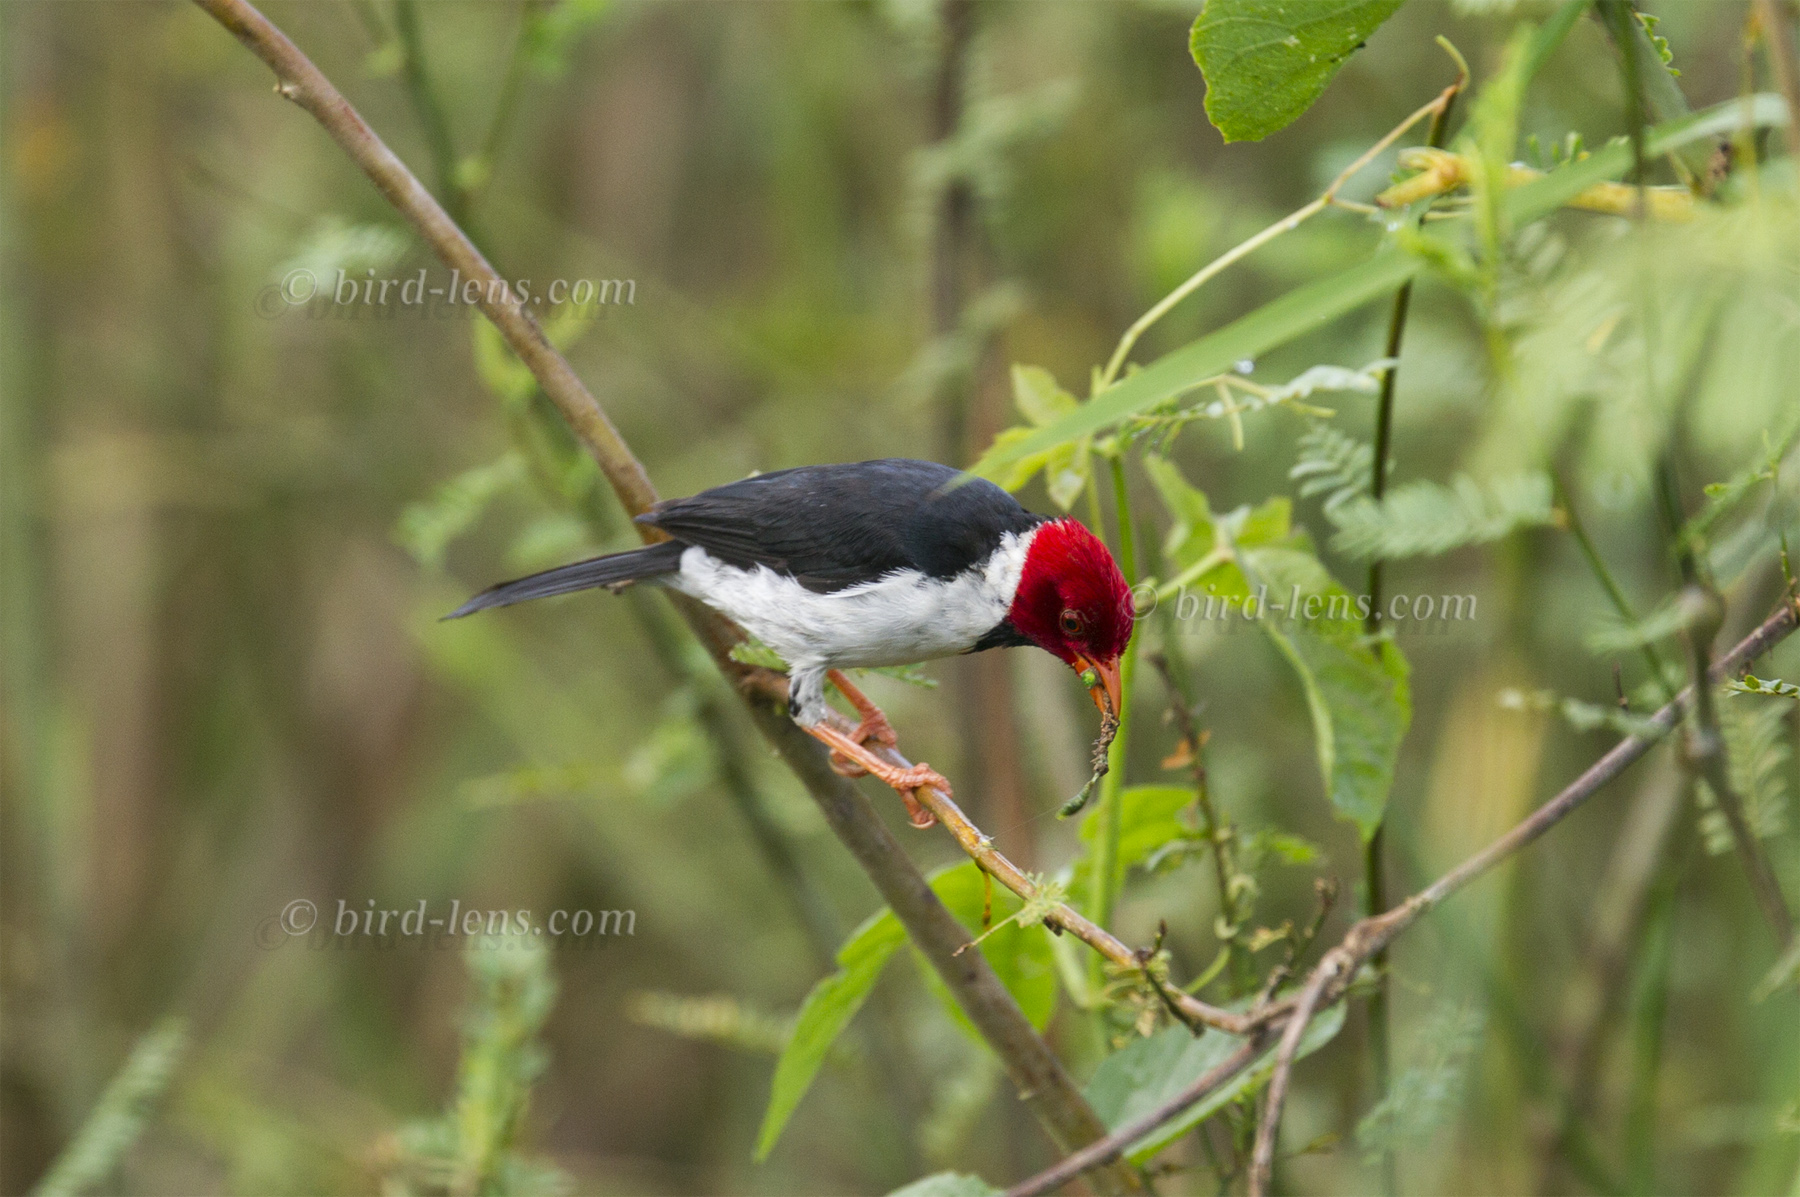 yellow billed cardinal in pantanal bird lens